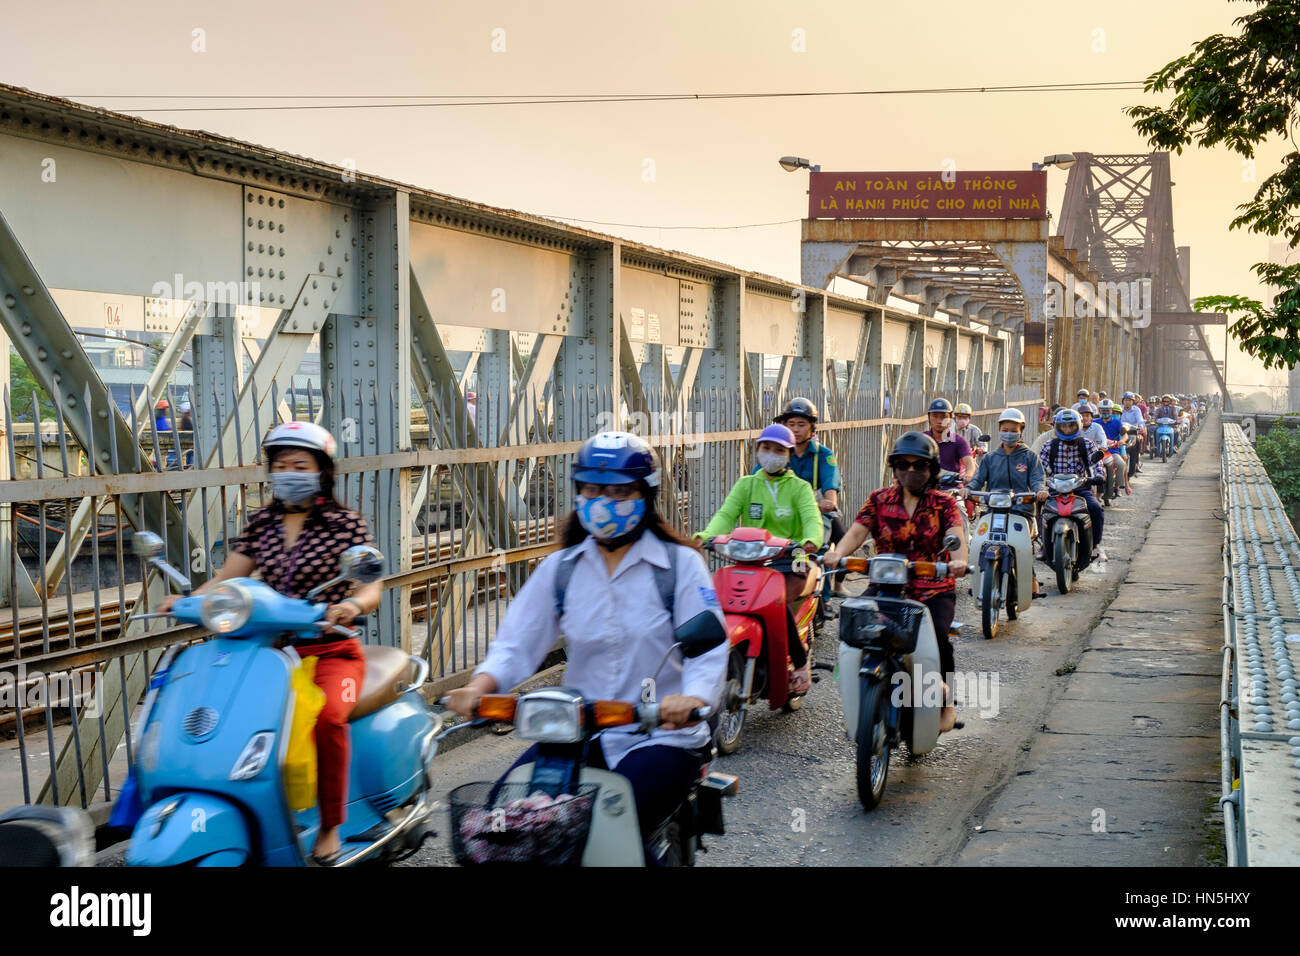 Heavy commuter traffic on the pedestrian walkway of the Long Bien cantilever bridge, Hanoi, Vietnam - Stock Image